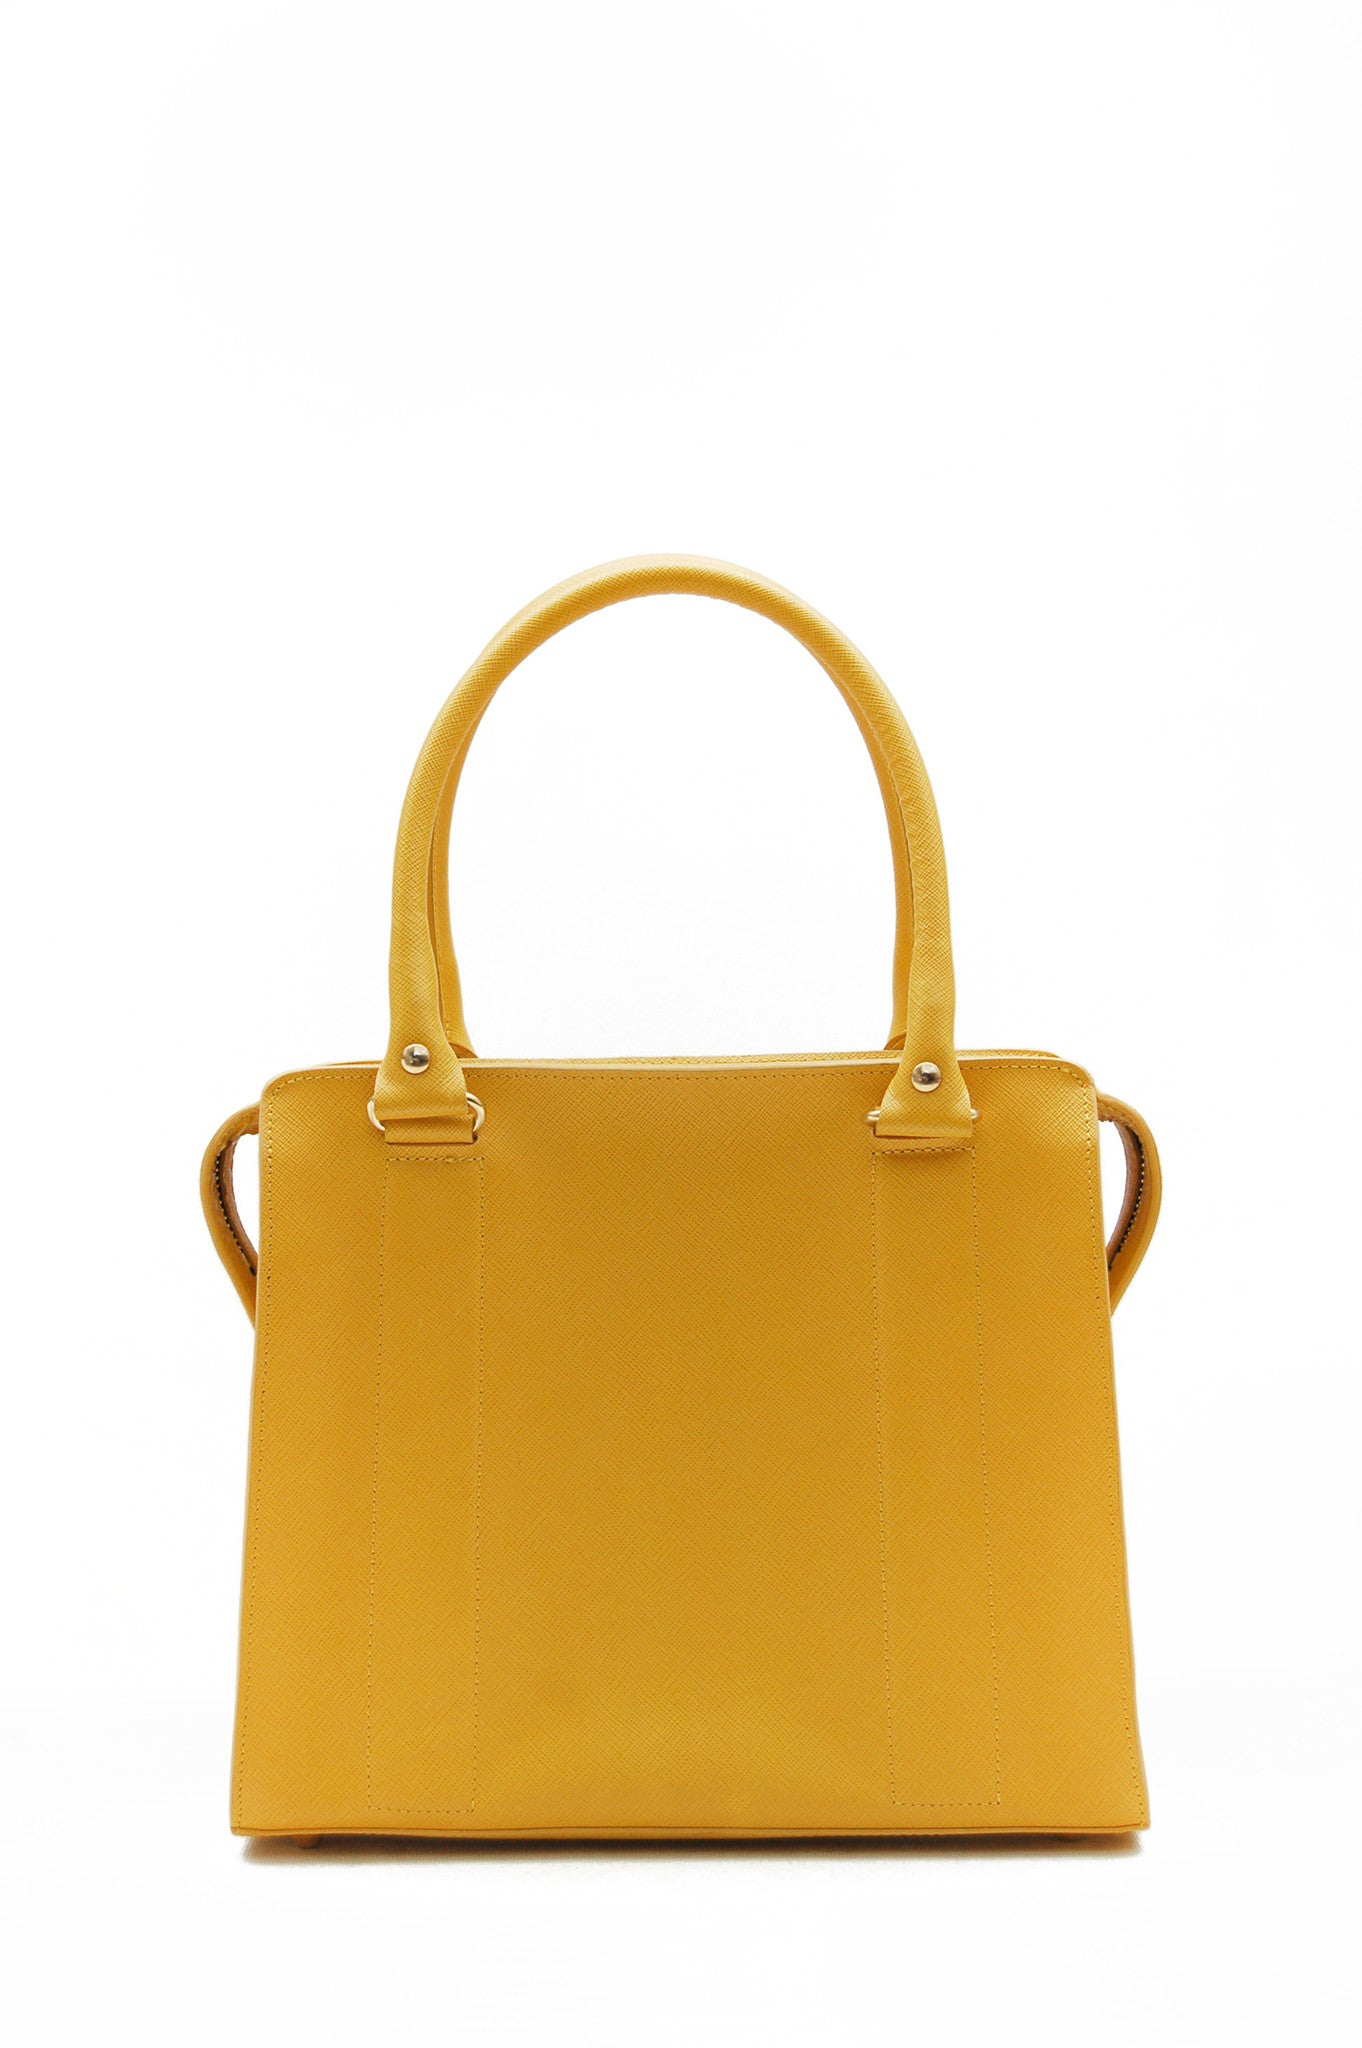 Wendee Ou: Middleton structured bag yellow | Bags > Handbags,Bags,Bags > Shoulder Bags -  Hiphunters Shop